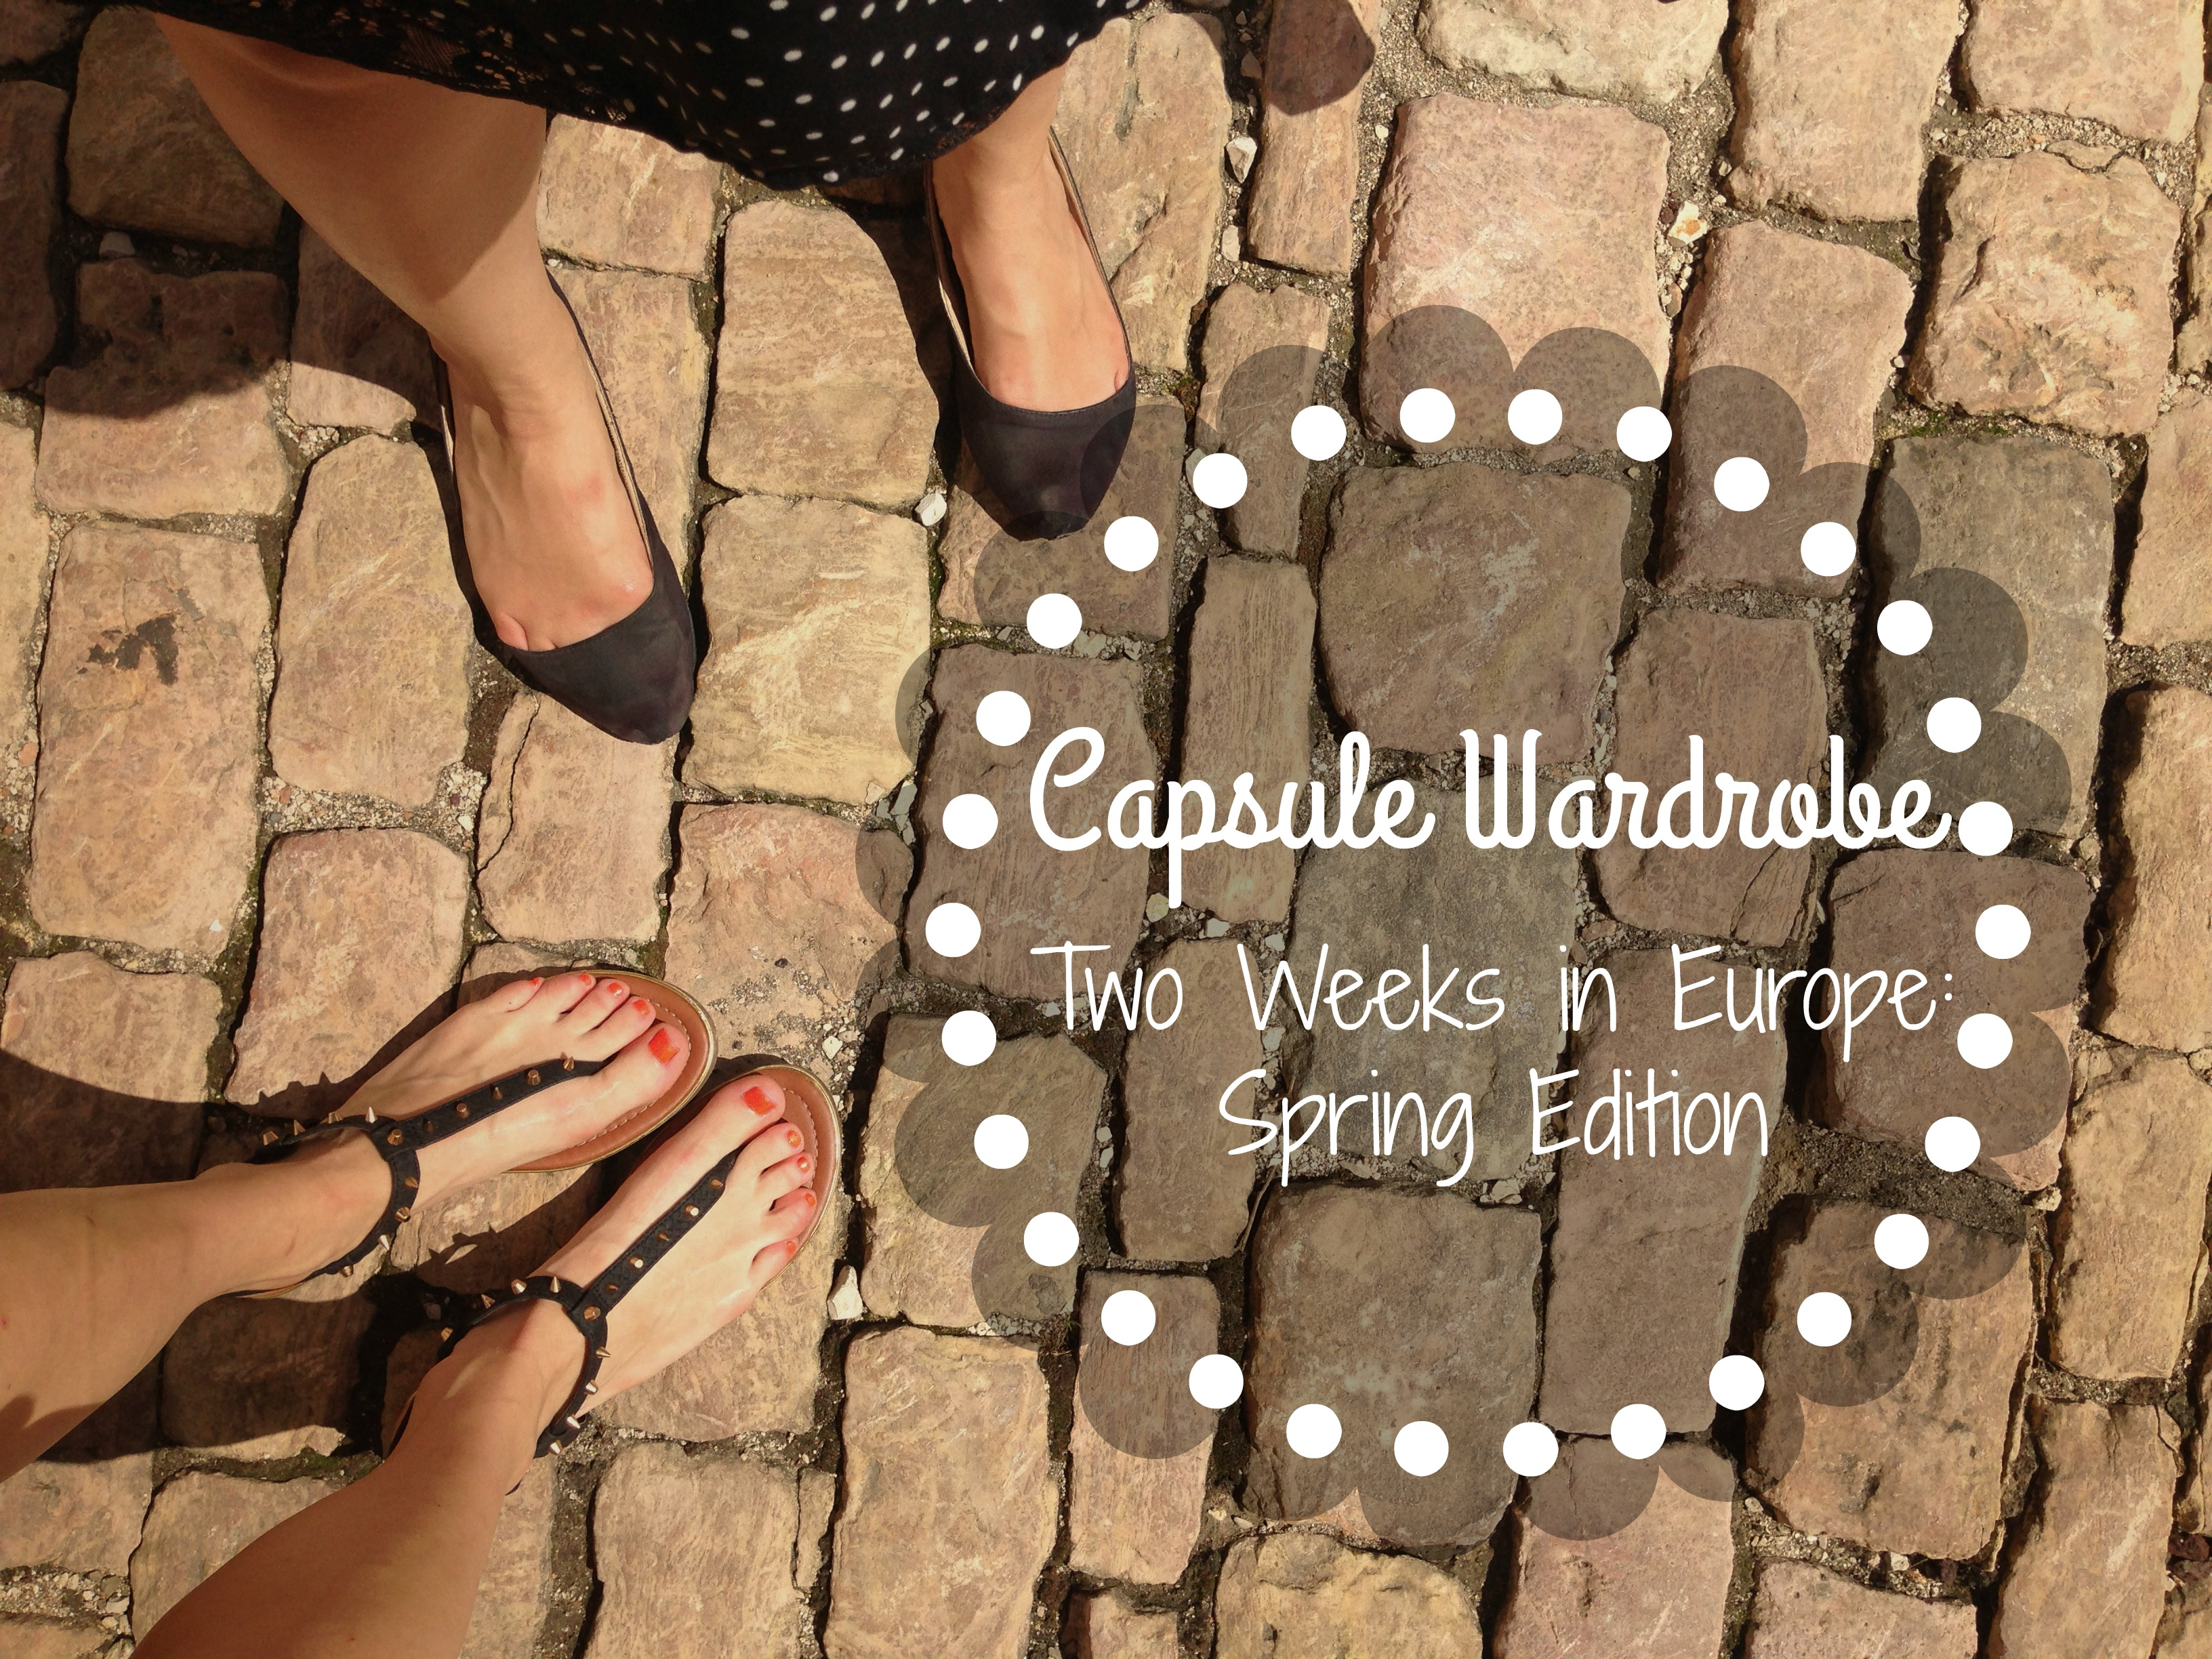 Two Weeks in Europe: What to Wear!?